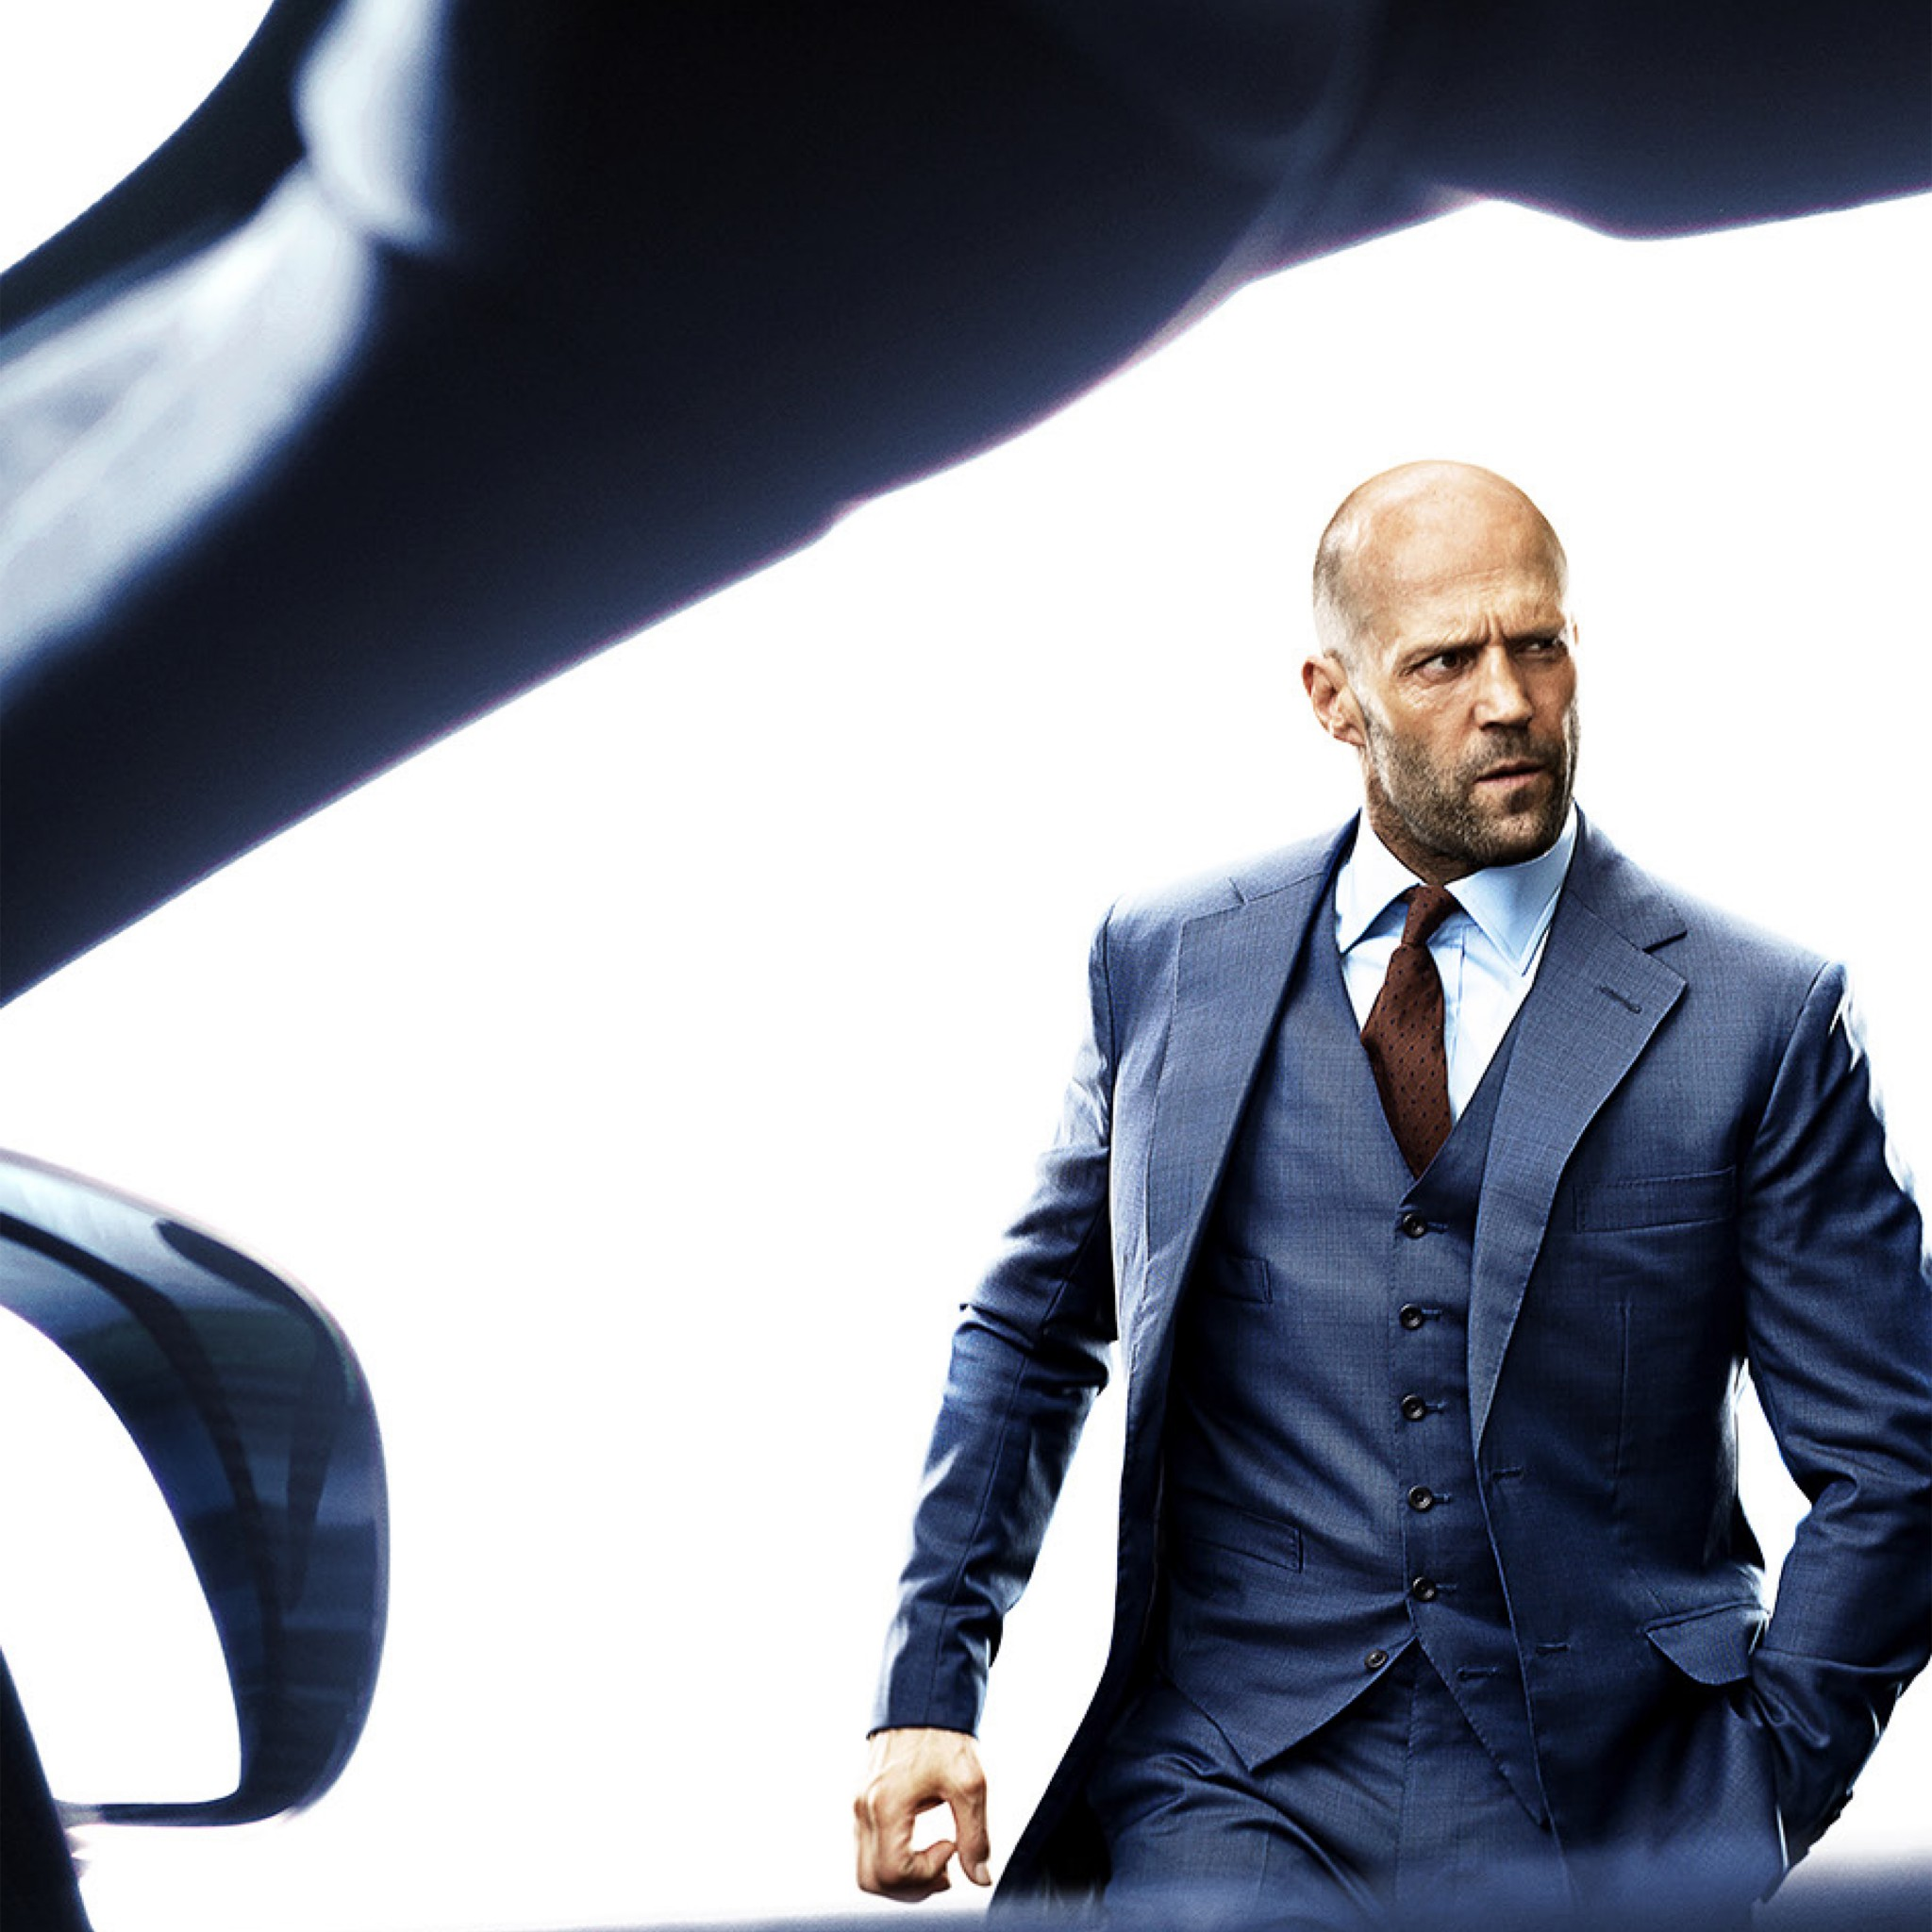 Fast Furious Jason Statham Wallpaper